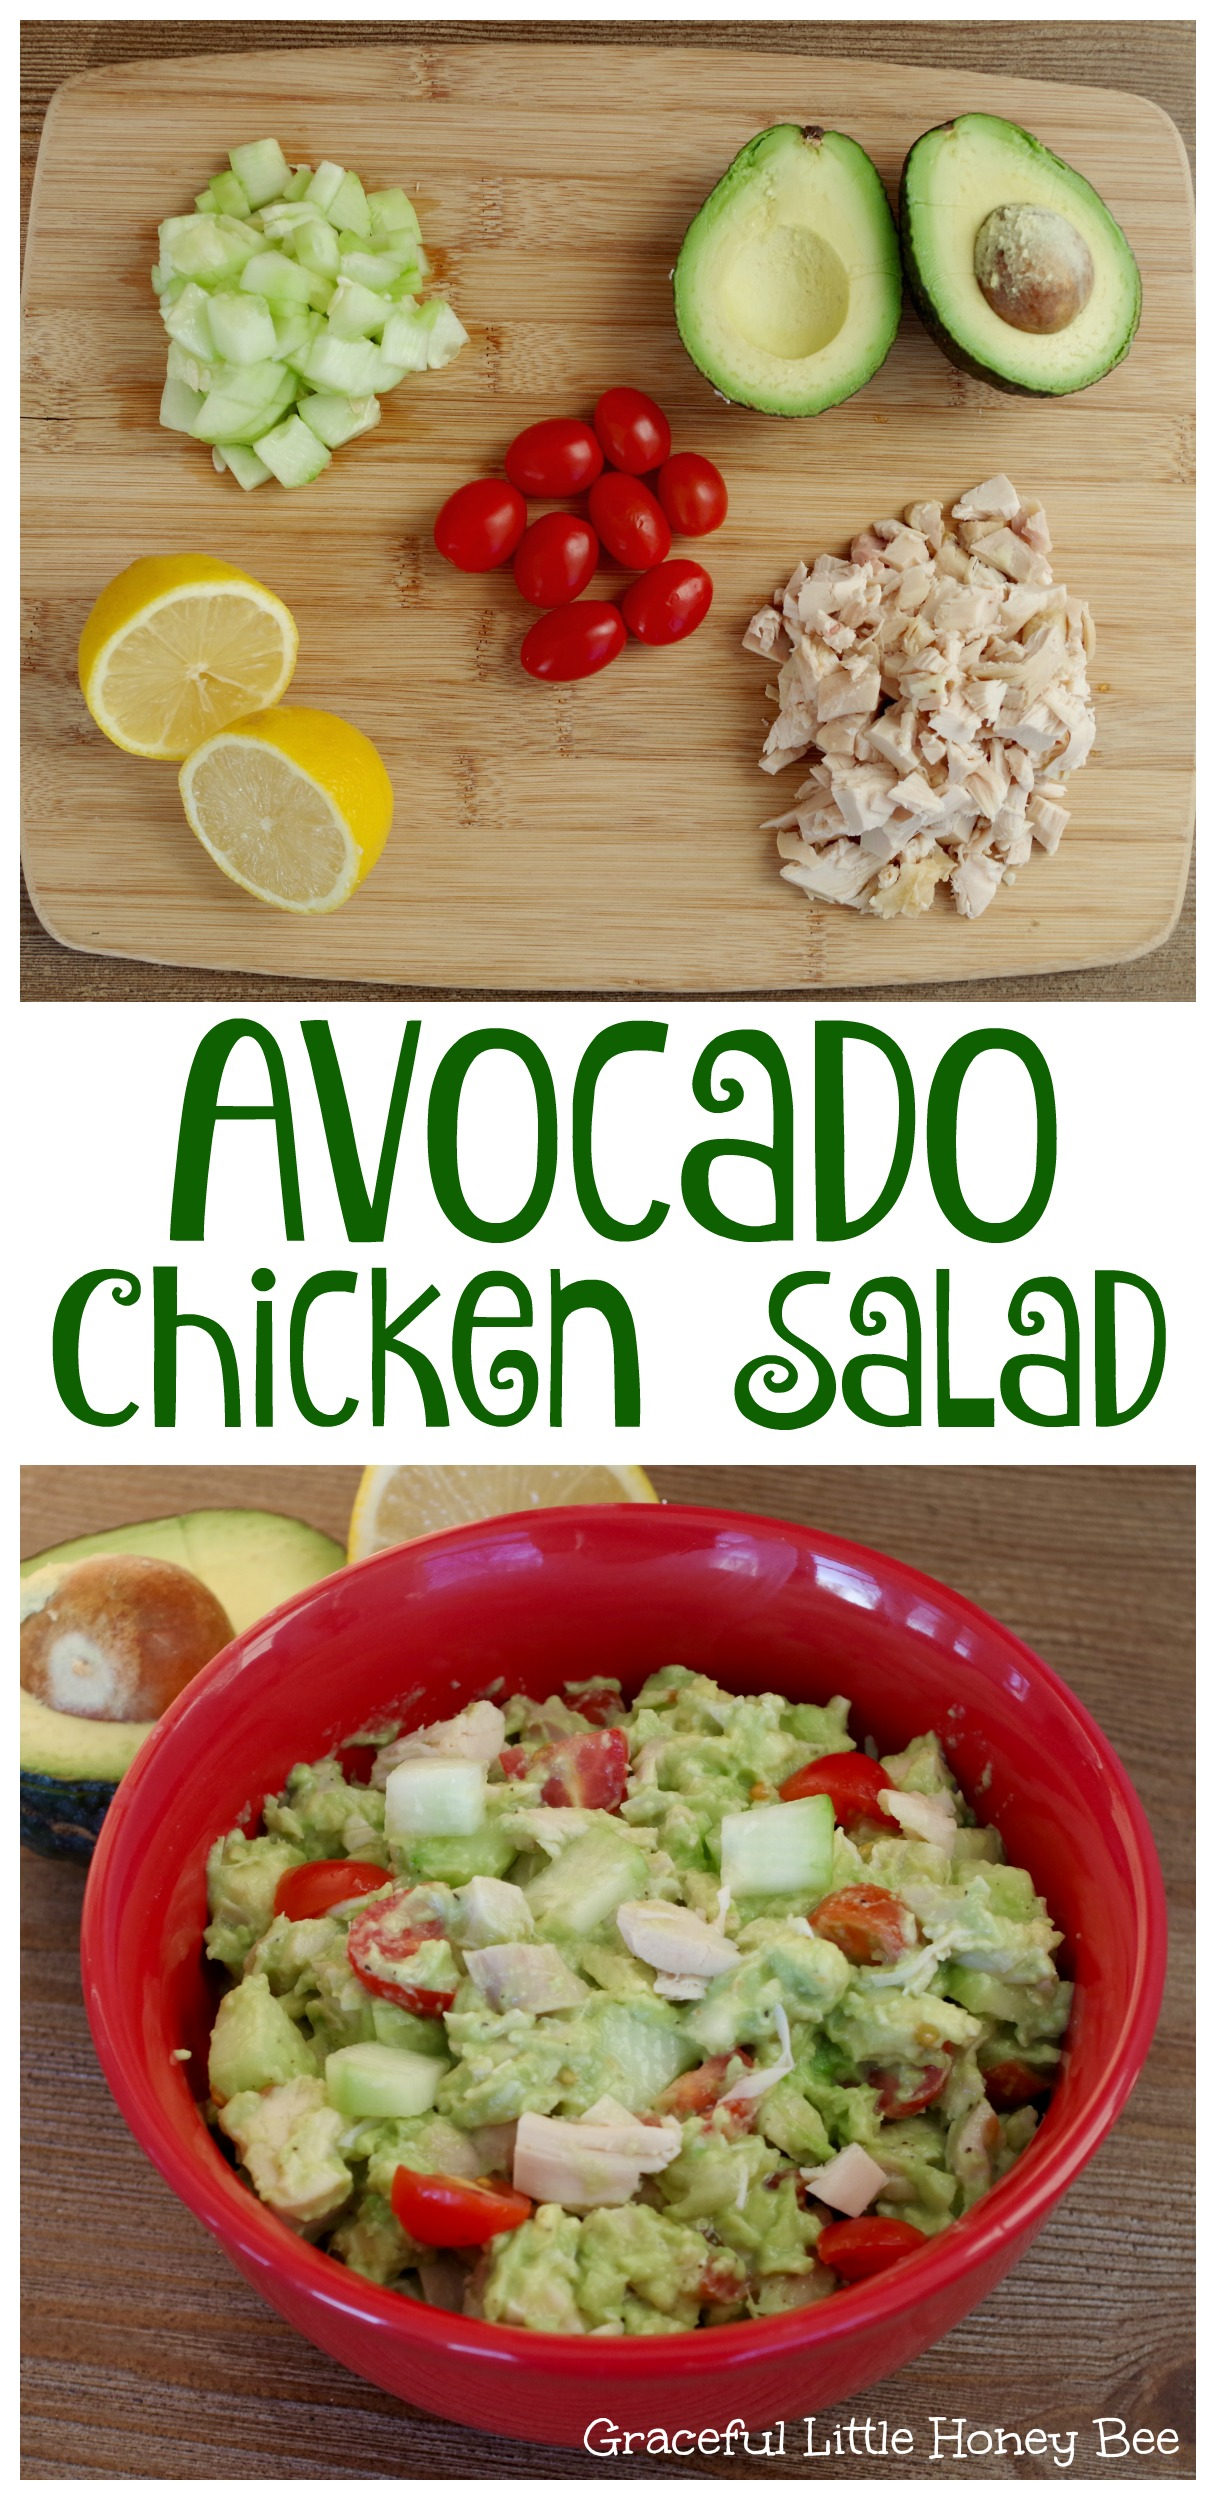 Healthy avocado chicken salad graceful little honey bee ive been trying to eat more fresh foods lately and i think this might just be my new favorite go to healthy recipe im kind of having a love affair with forumfinder Choice Image